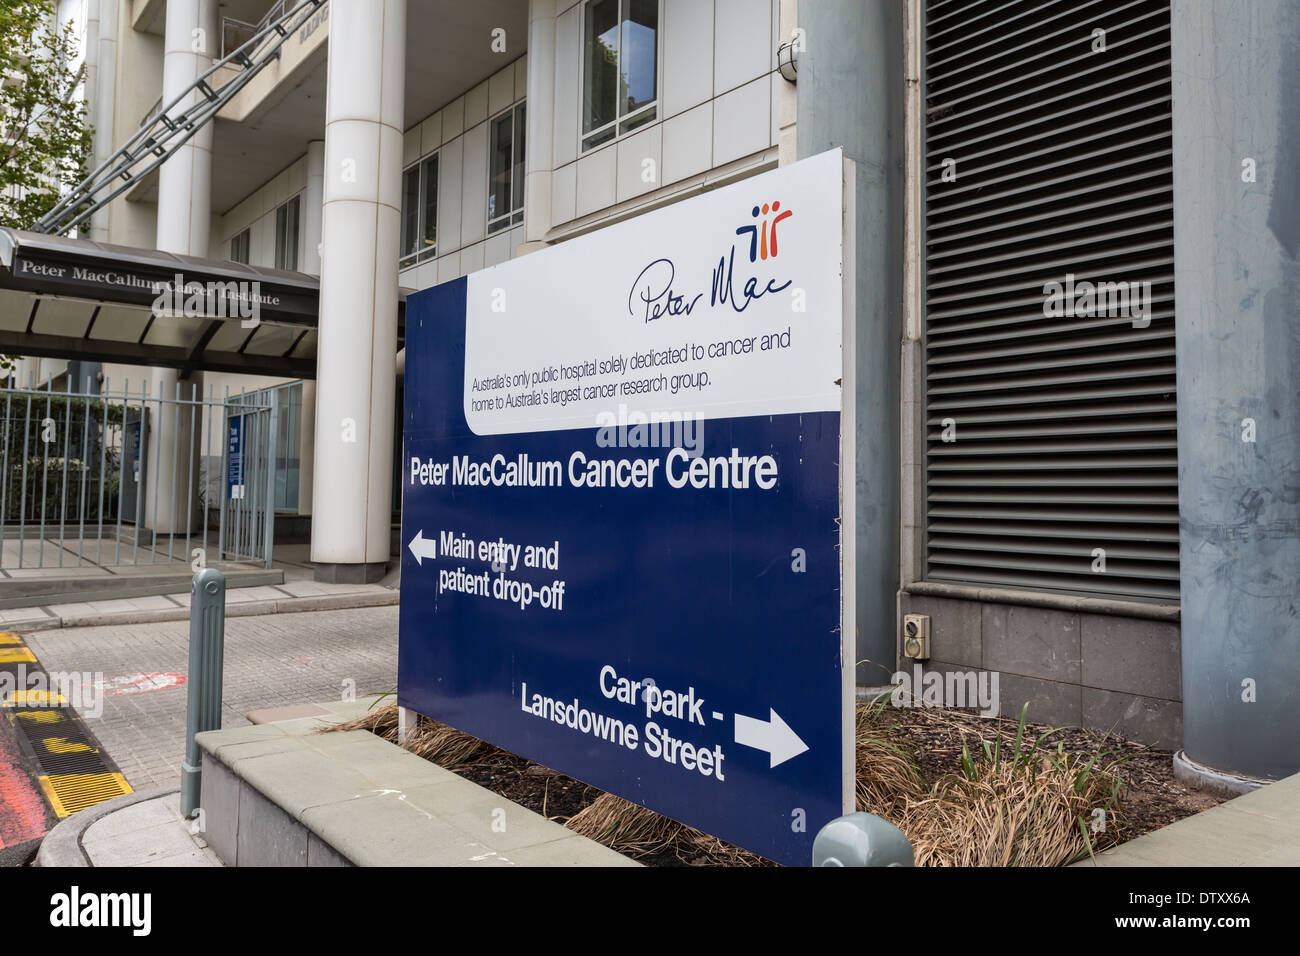 Peter MacCallum Cancer Centre sign and entrance - Stock Image